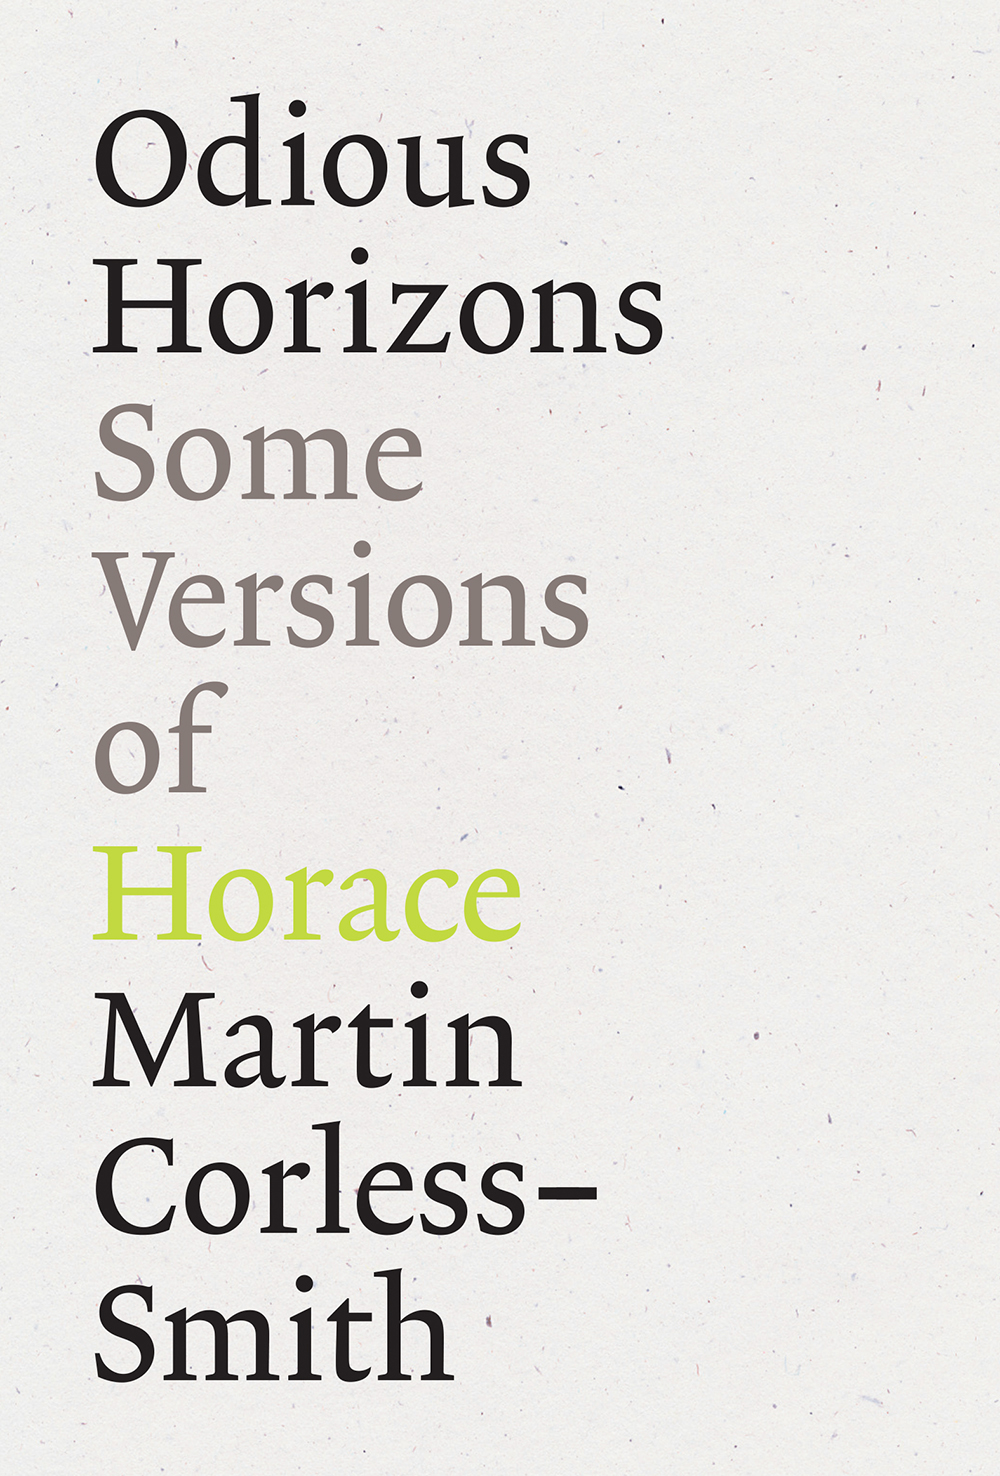 Odious Horizons: Some Versions of Horace